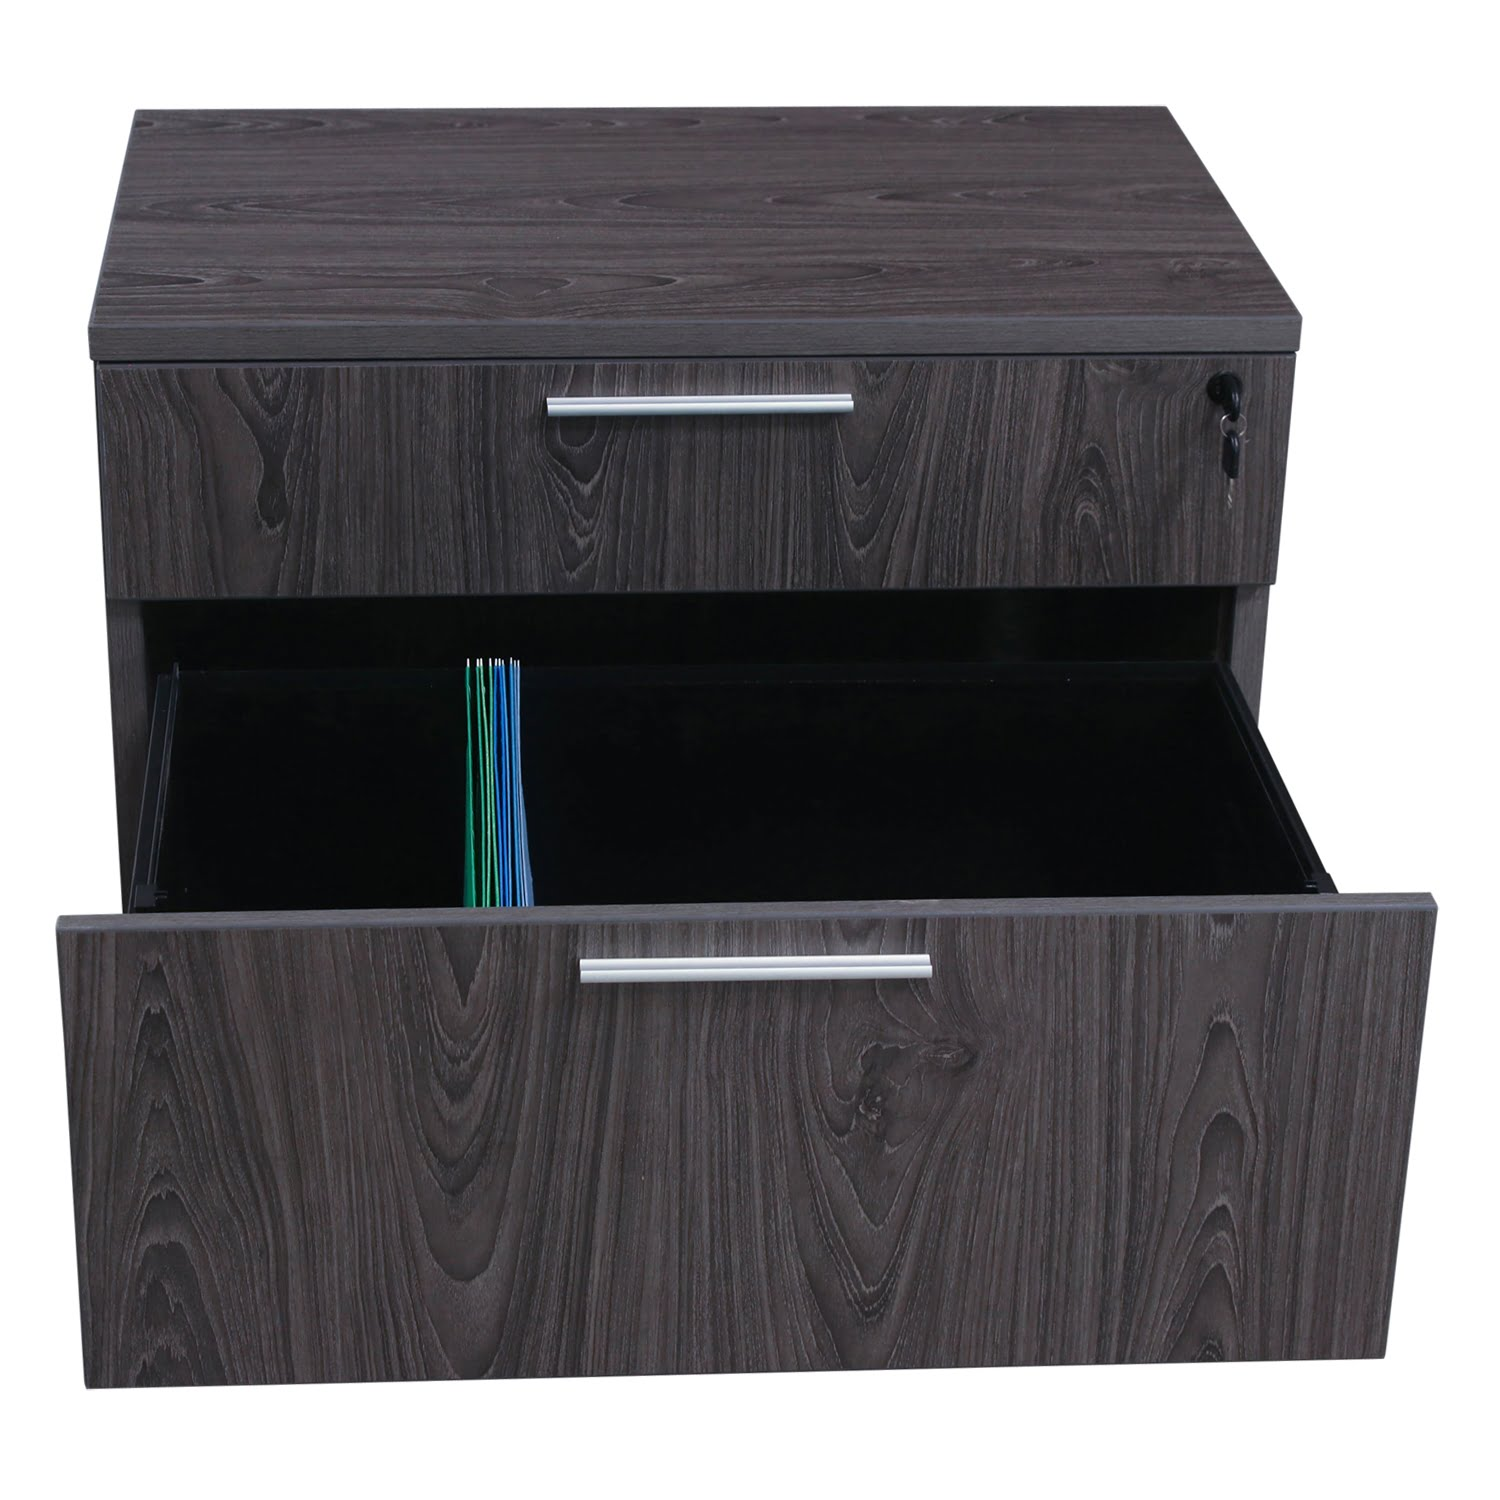 Manhattan 2 Drawer 32 in Lateral File, Cashmere Gray